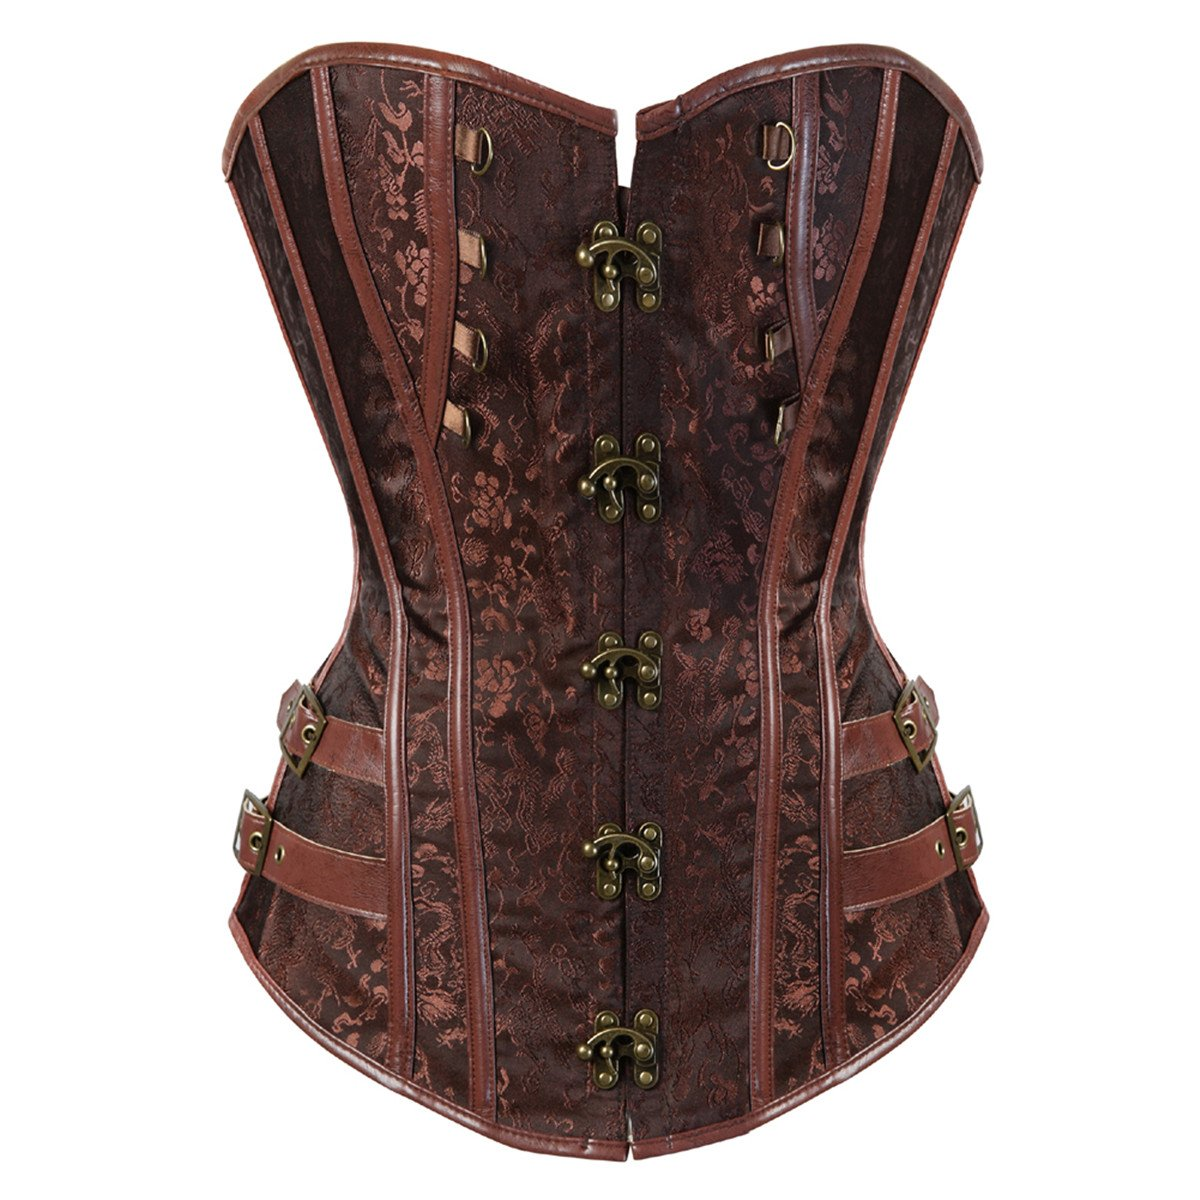 Steampunk Plus Size Clothing & Costumes Kranchungel Womens Punk Rock Faux Leather Corset Retro Goth Waist Cincher Basque Bustier $48.69 AT vintagedancer.com